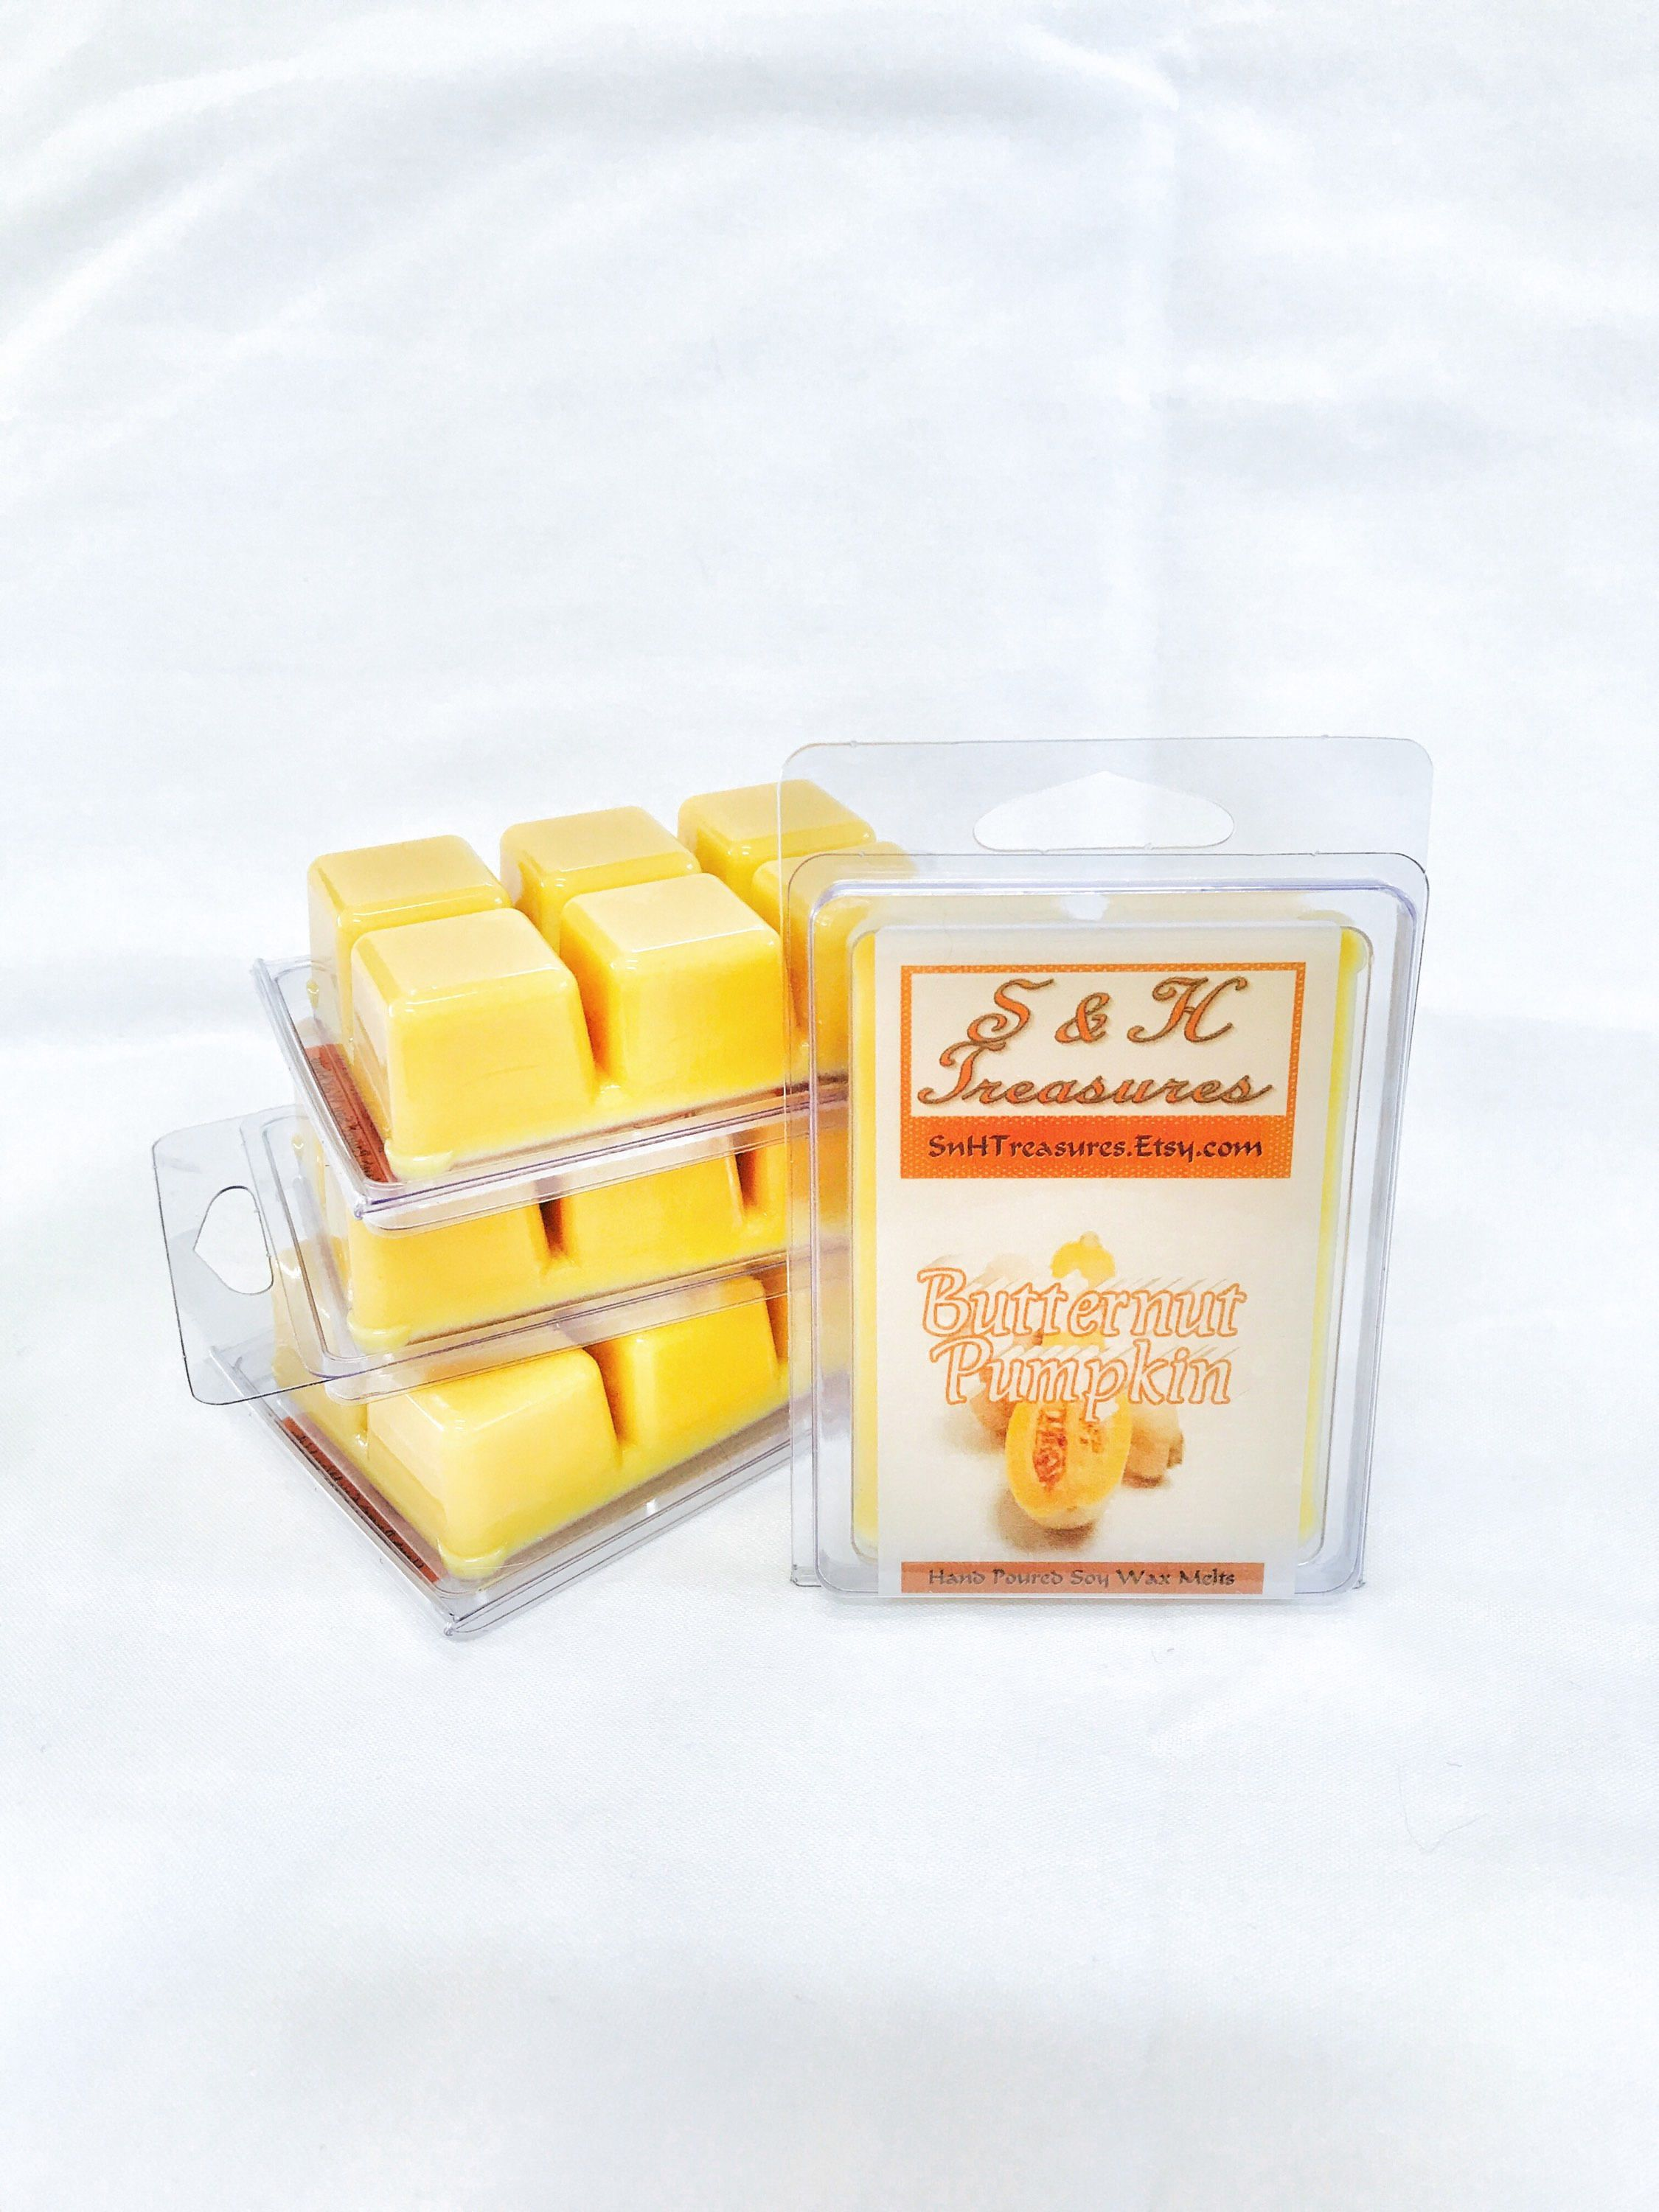 Butternut Pumpkin Scent Scented Soy Wax Melts Pure Soy